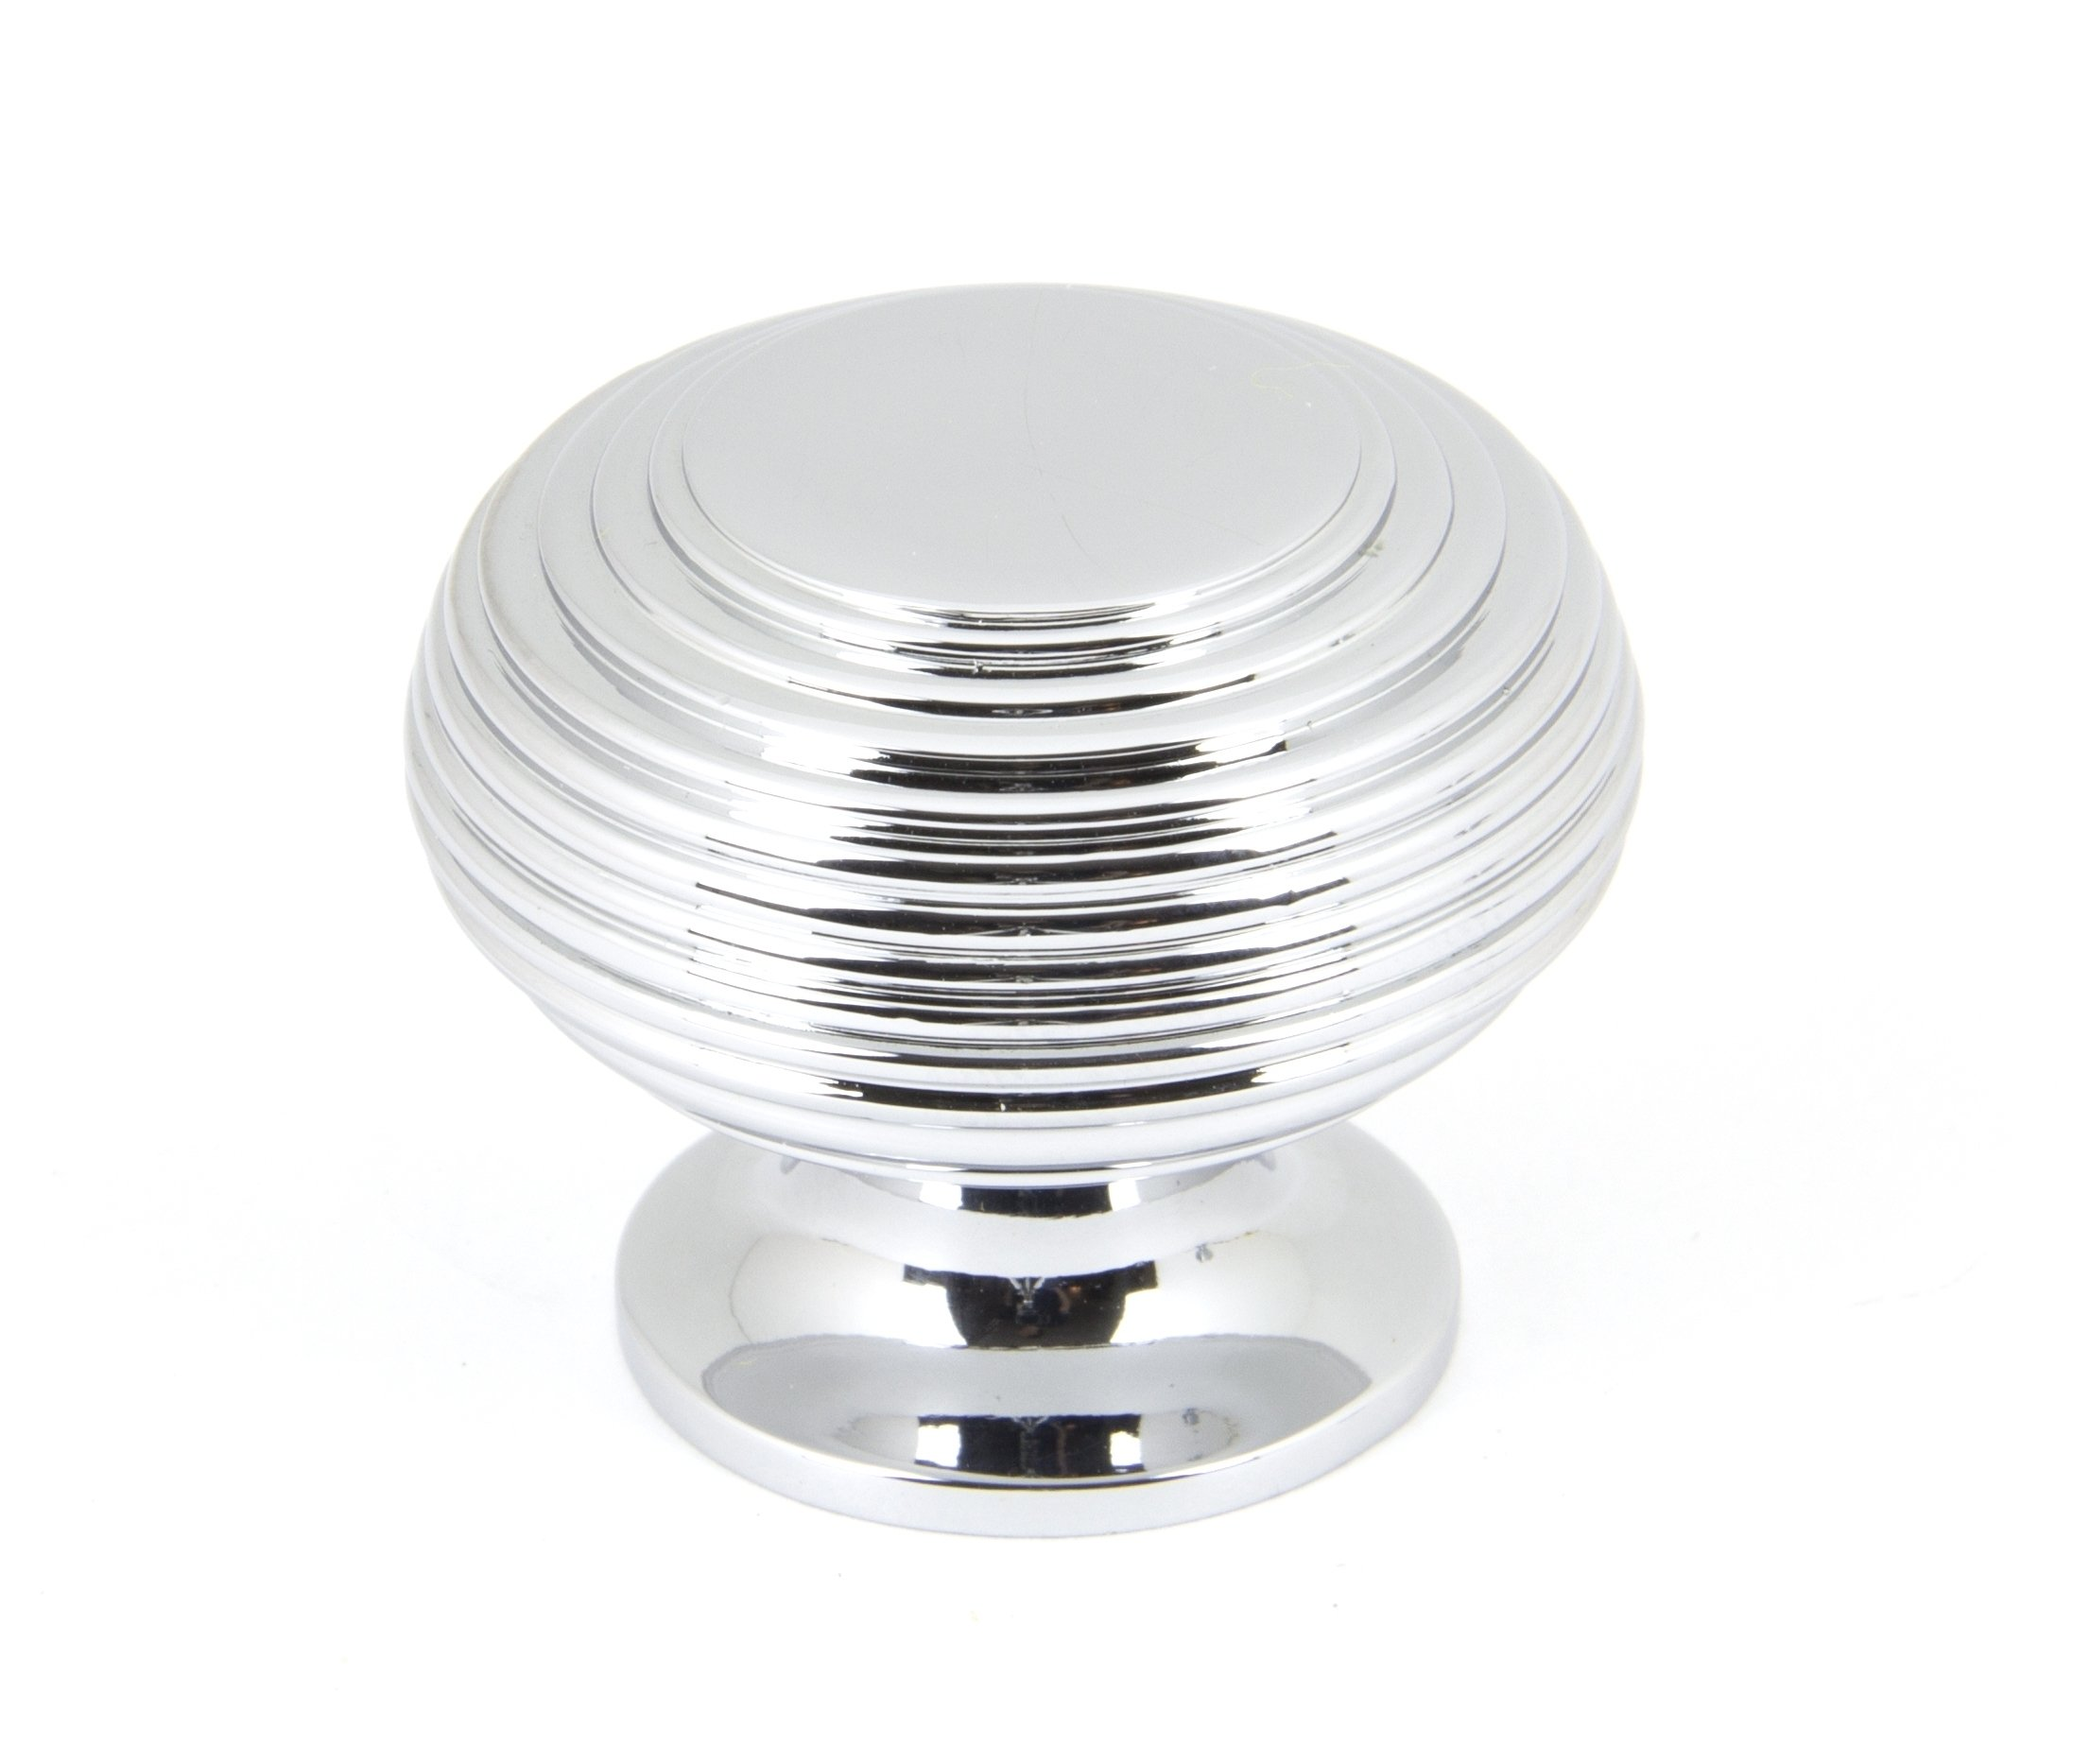 Polished Chrome Beehive Cabinet Knob - Large